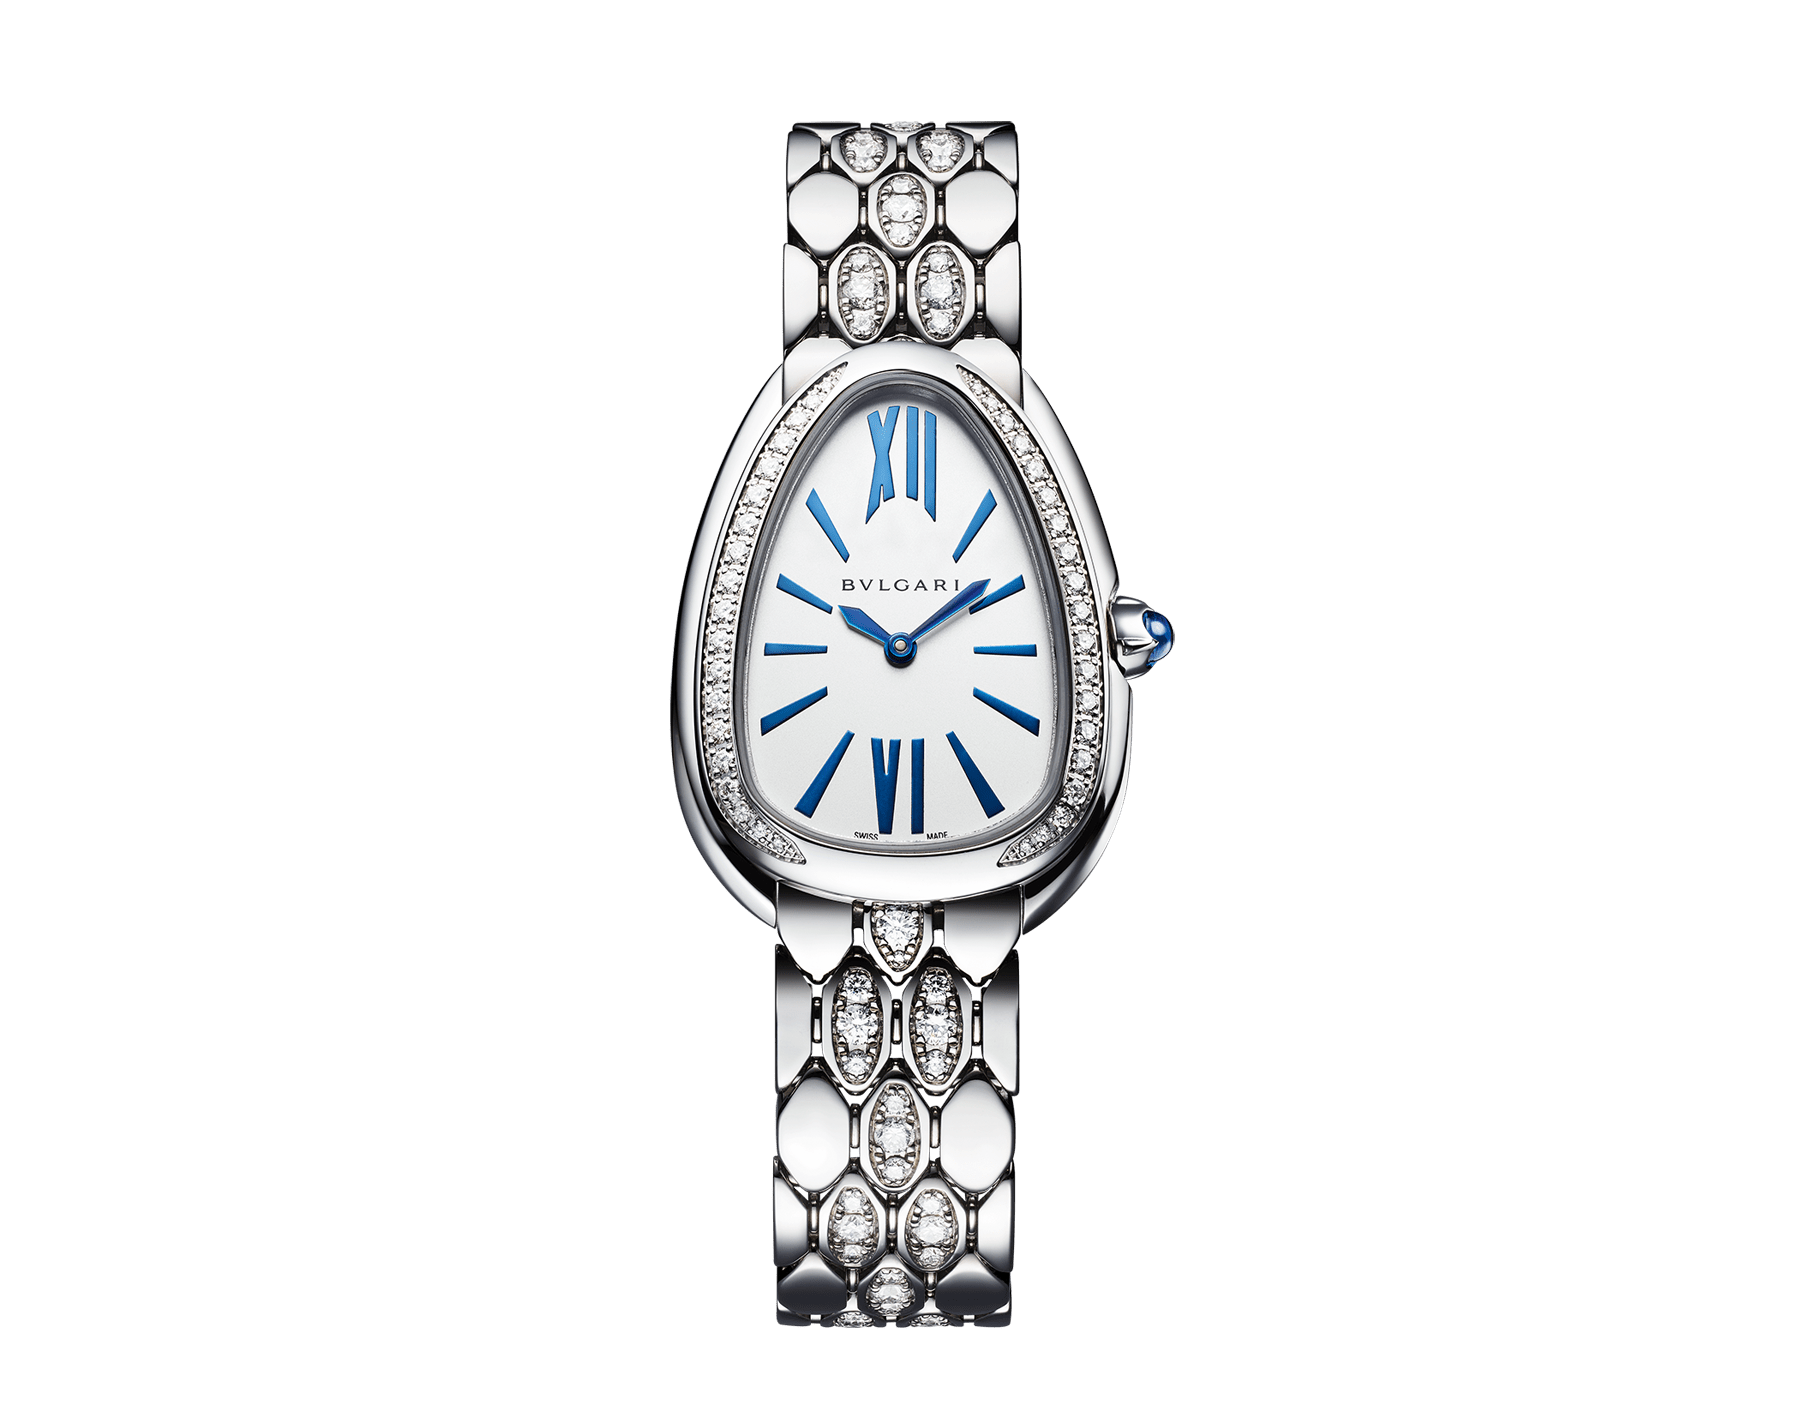 Serpenti Seduttori watch with 18 kt white gold case and bracelet both set with diamonds, and silver opaline dial 103276 image 1